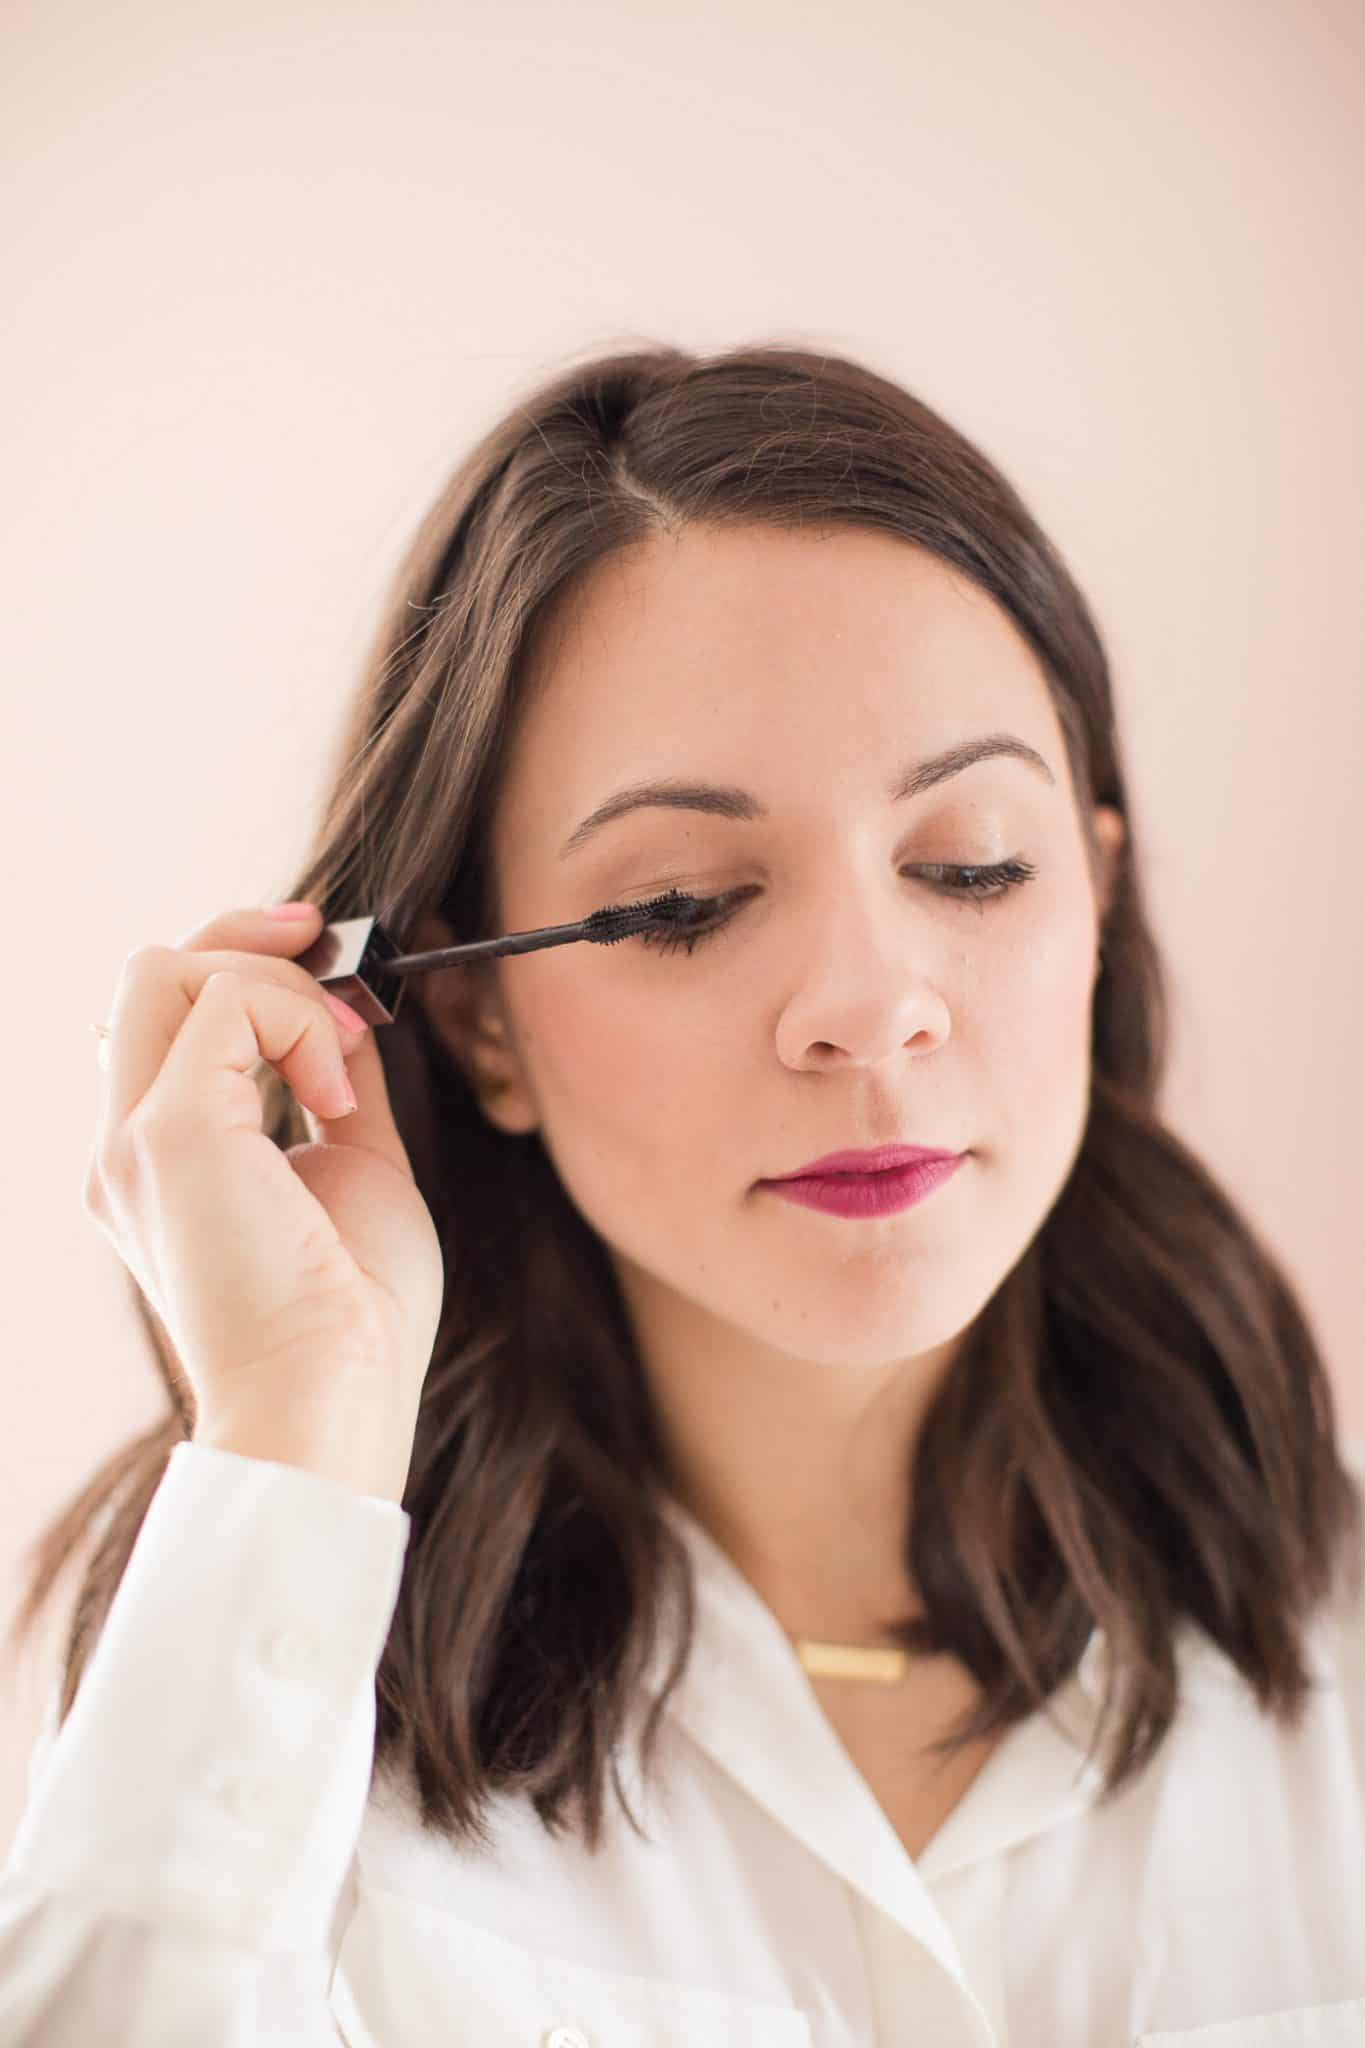 How to get bold lashes, the best mascara for longer lashes - My Style Vita @mystylevita